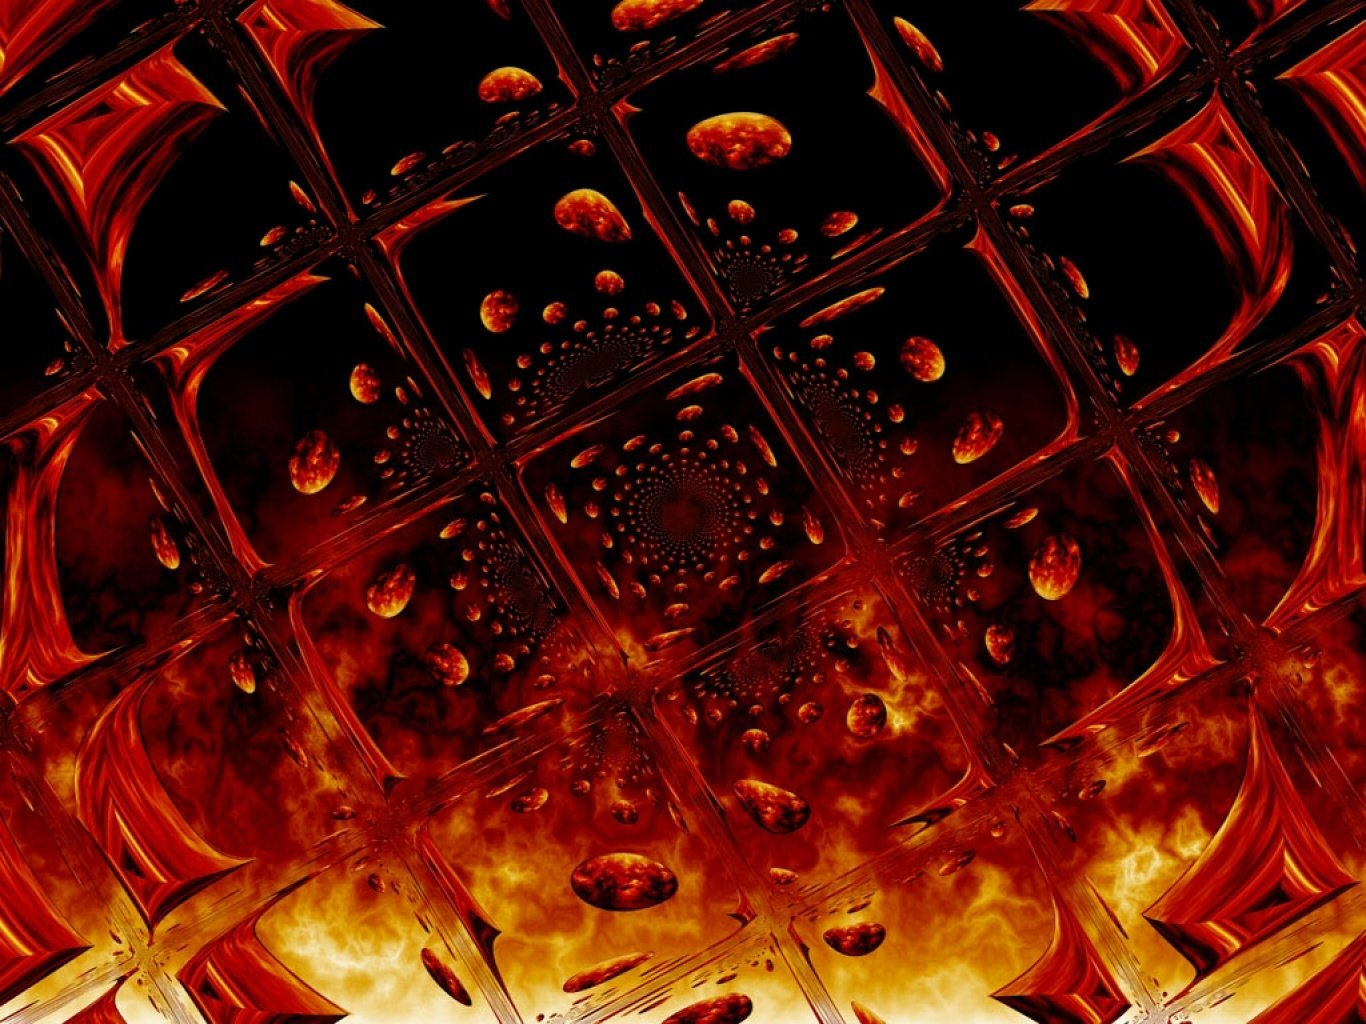 3d Wallpaper Avatar Fire Glass Wallpaper And Background Image 1366x1024 Id